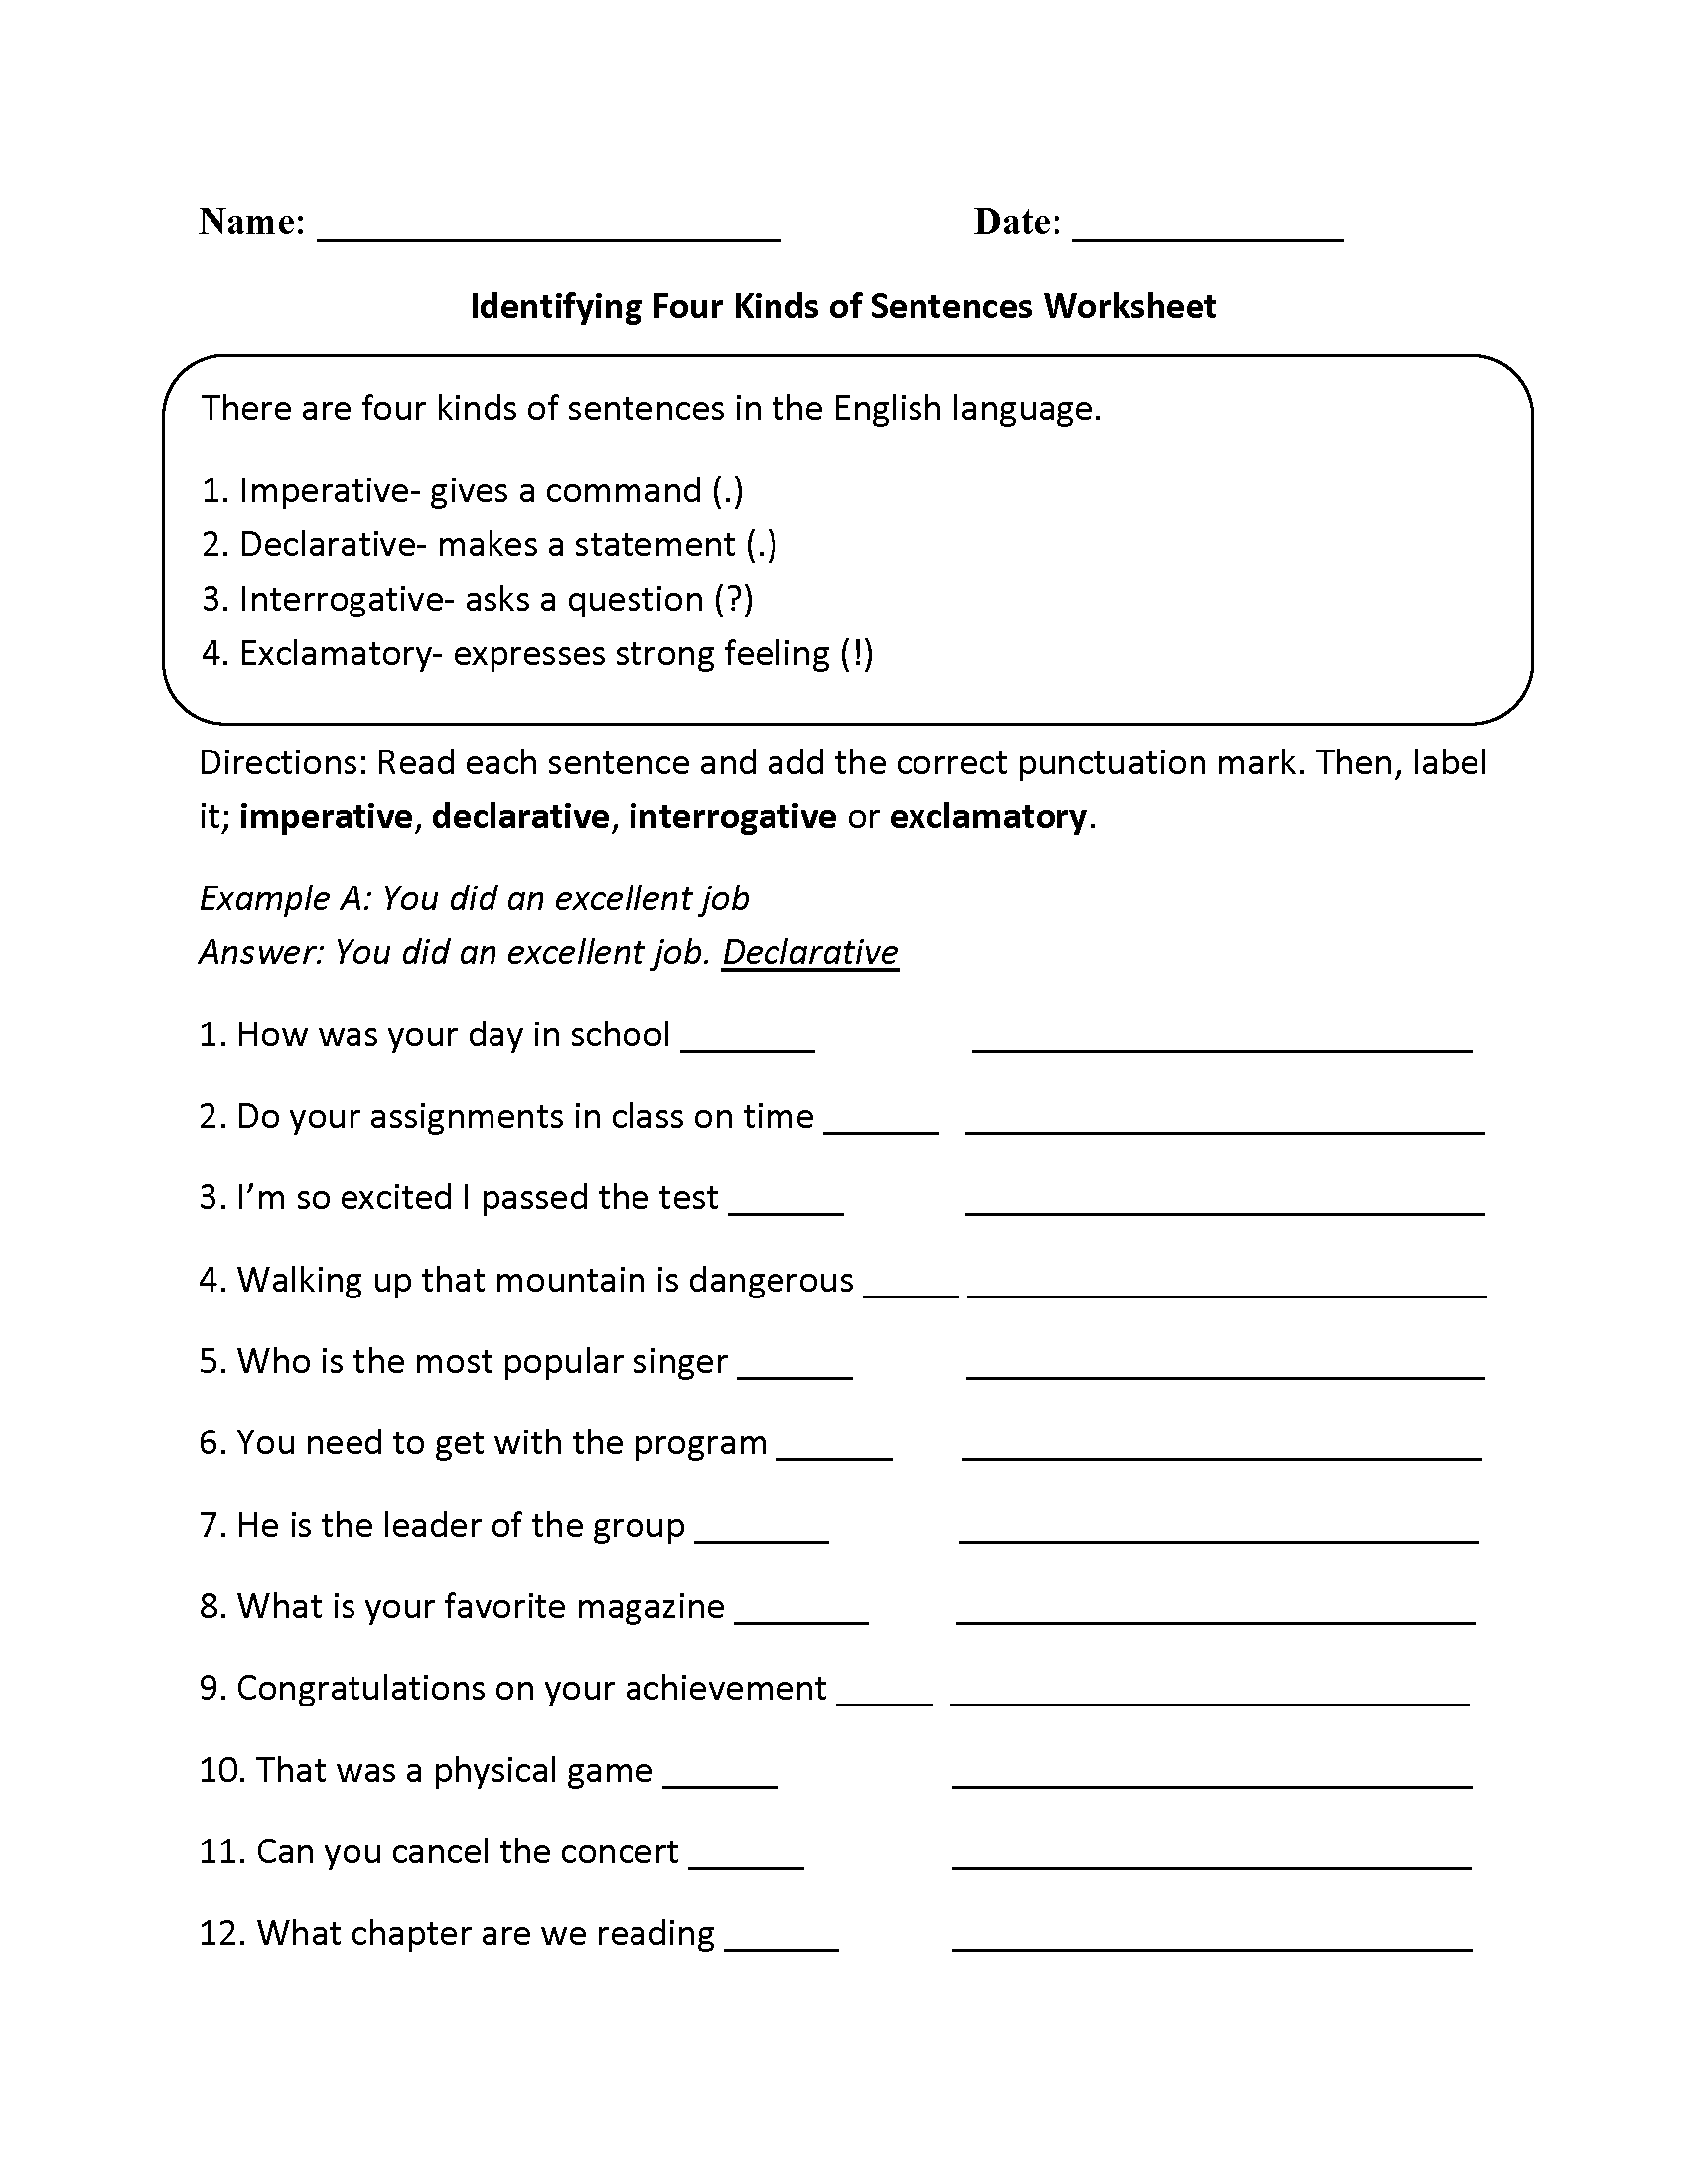 Worksheets Four Kinds Of Sentences Worksheet kinds of sentences worksheets practicing four worksheet